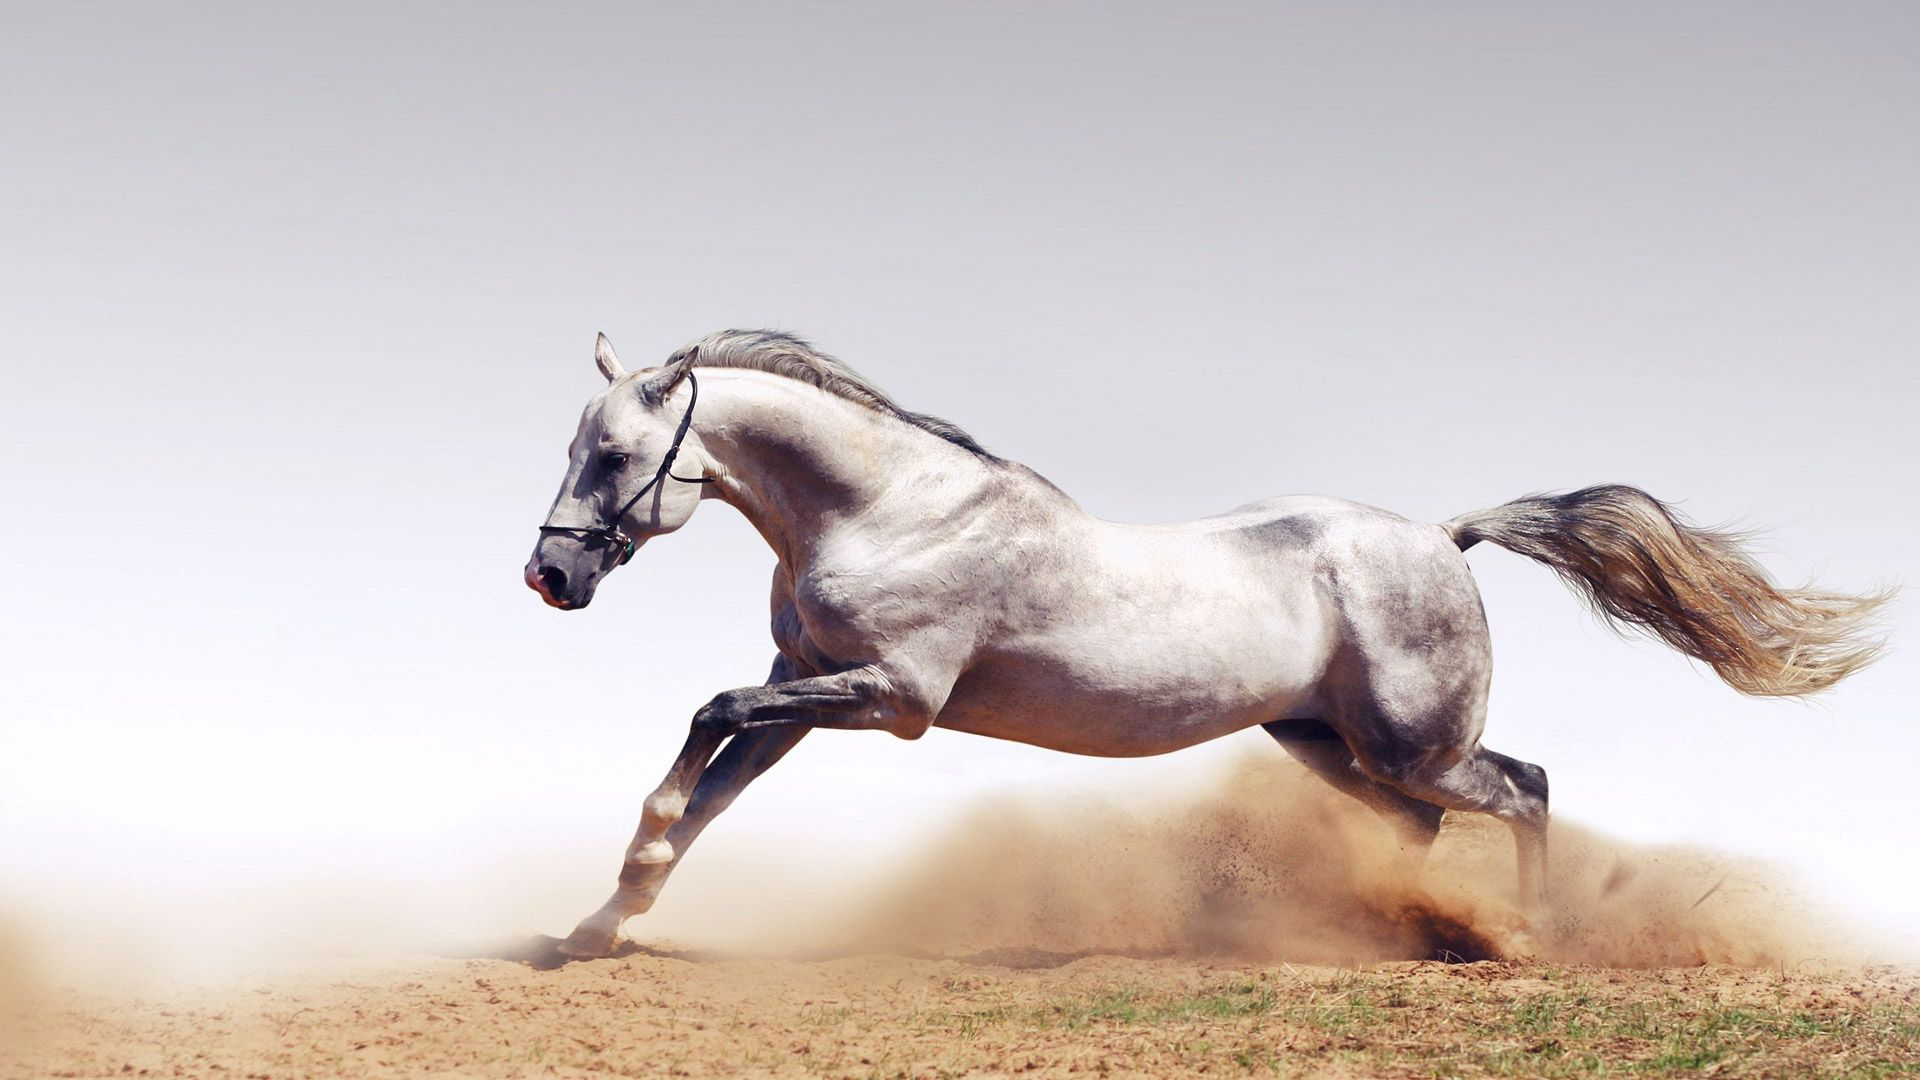 Must see Wallpaper Horse Stunning - 42c12c713676f32f7d455ca9c5f0fa5a  Collection_465140.jpg